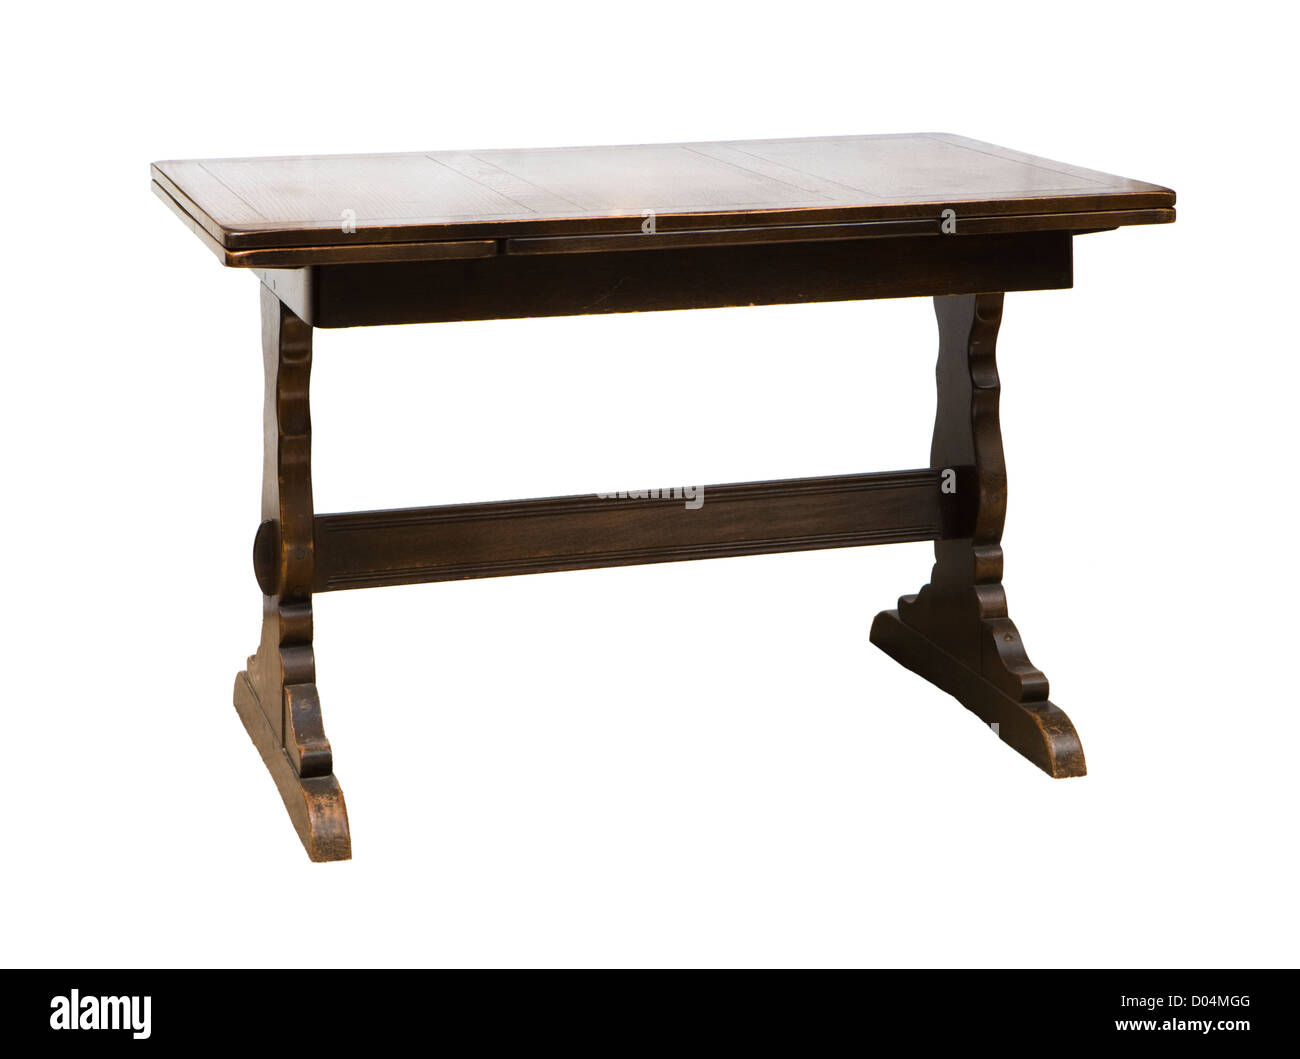 Dining table. - Stock Image